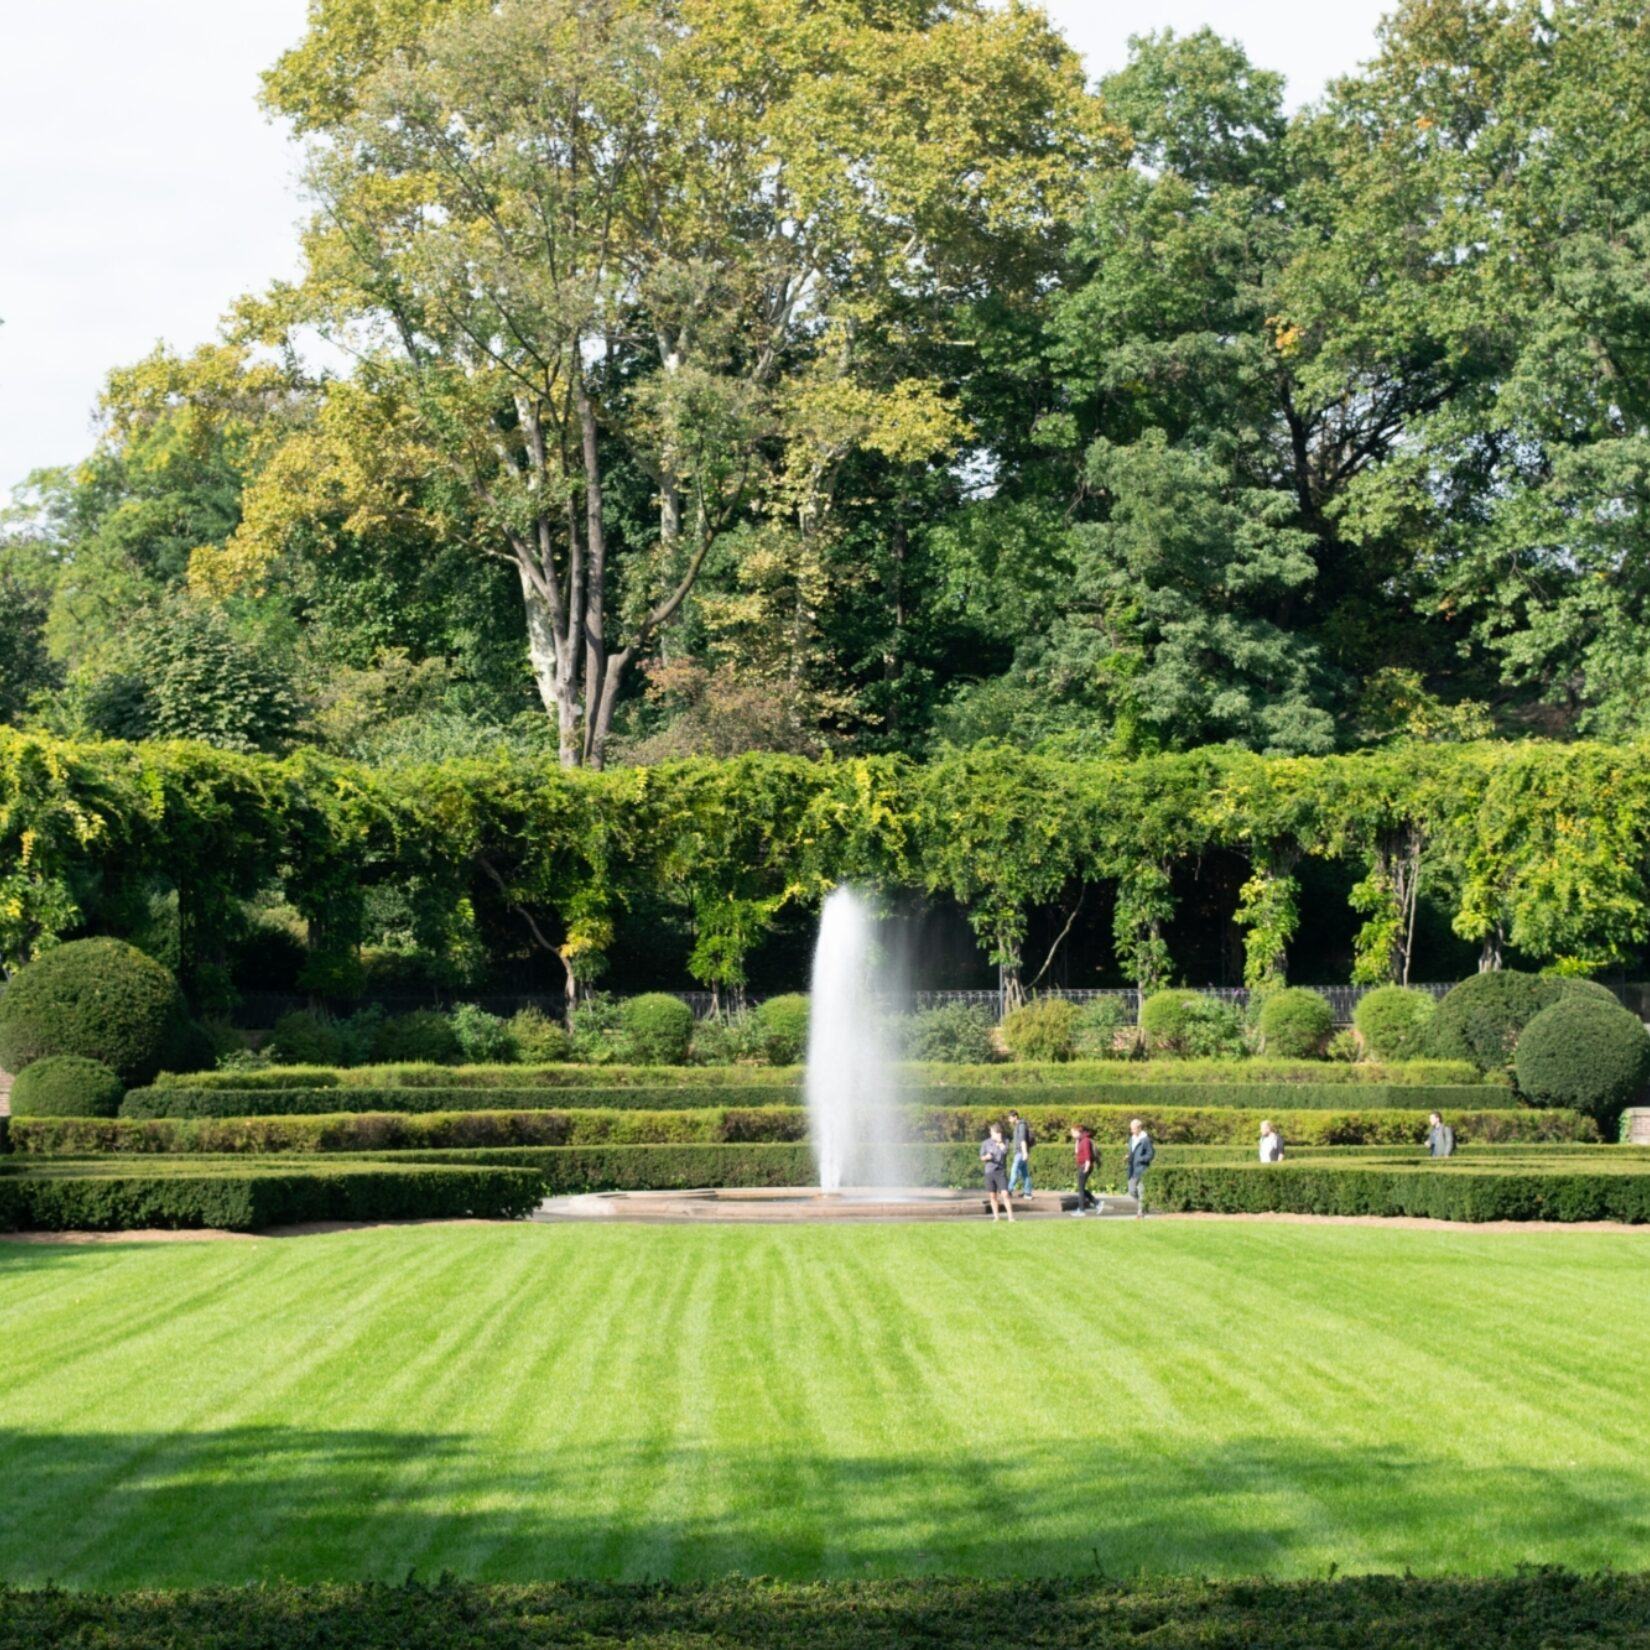 A symmetric view of the garden, the fountain, and the pergola in the background